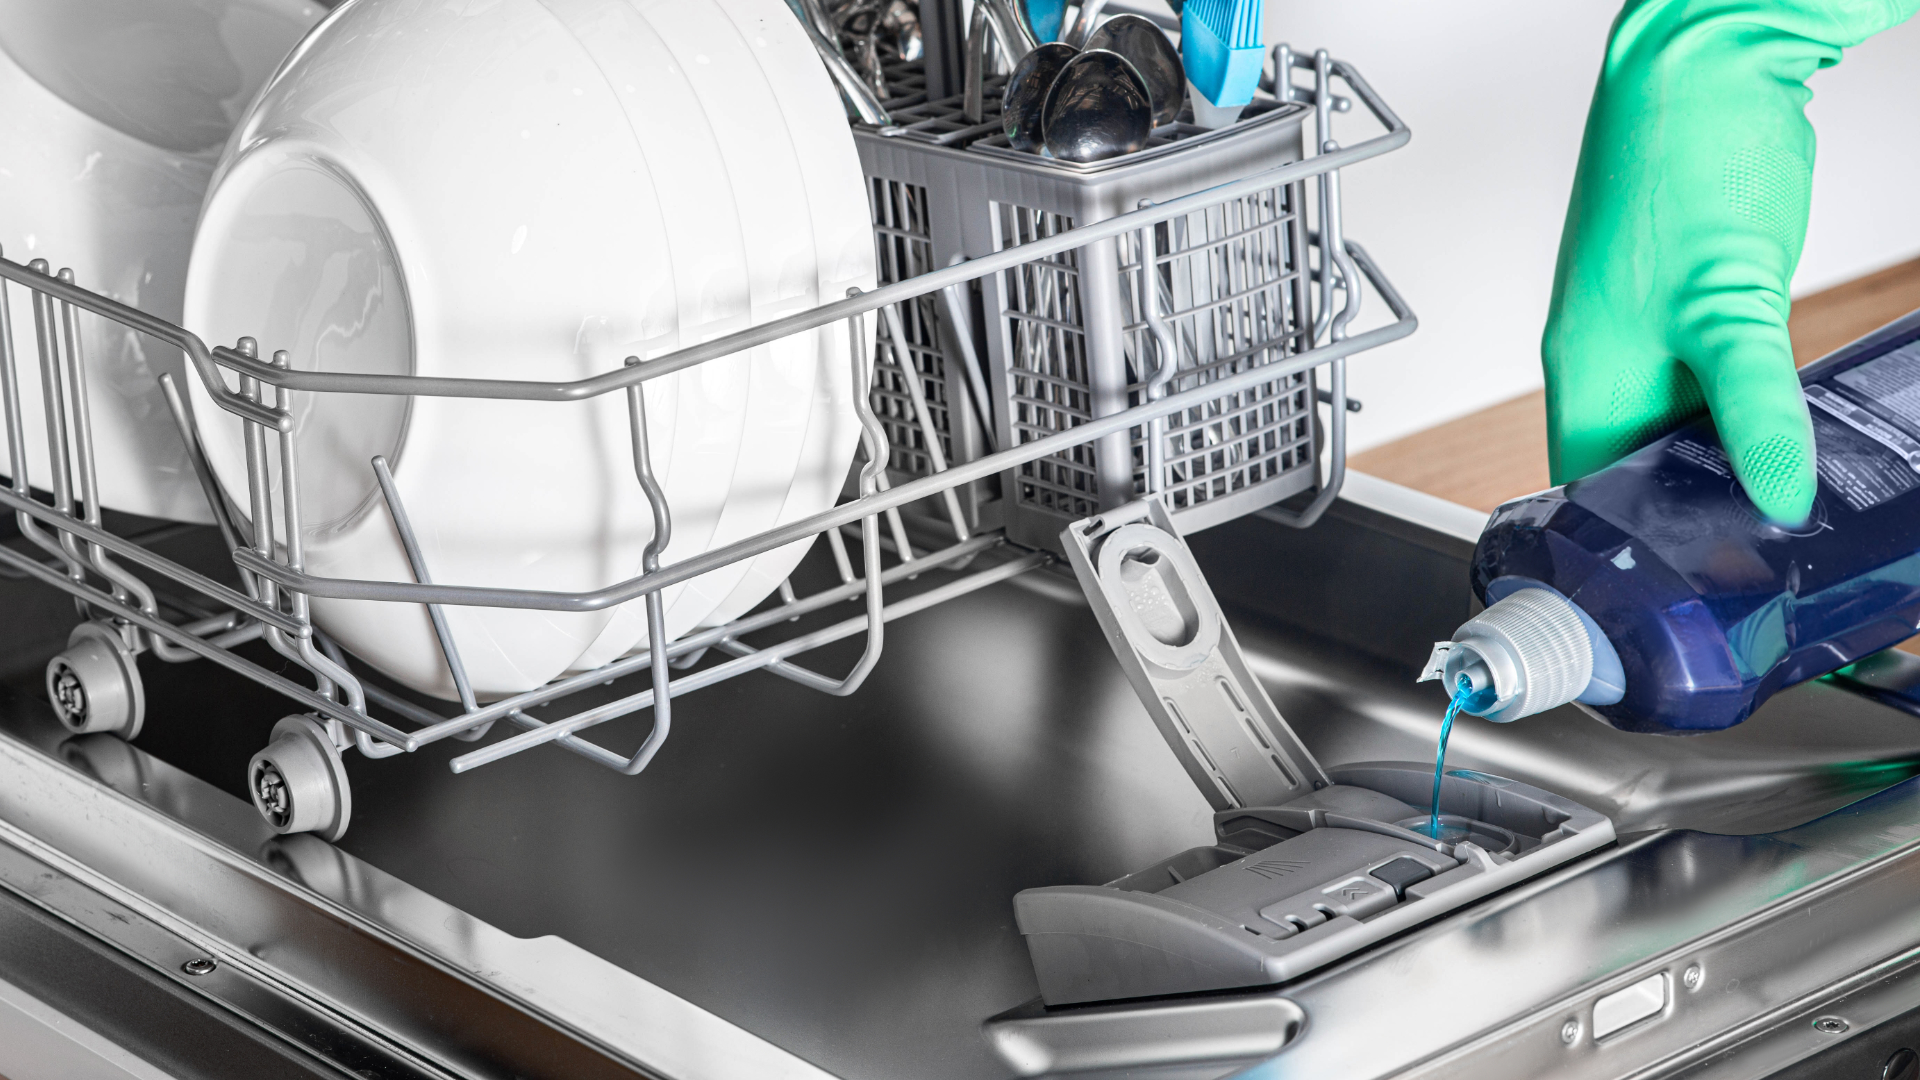 How To Deal With A Leaking Dishwasher Soap Dispenser Fleet Appliance